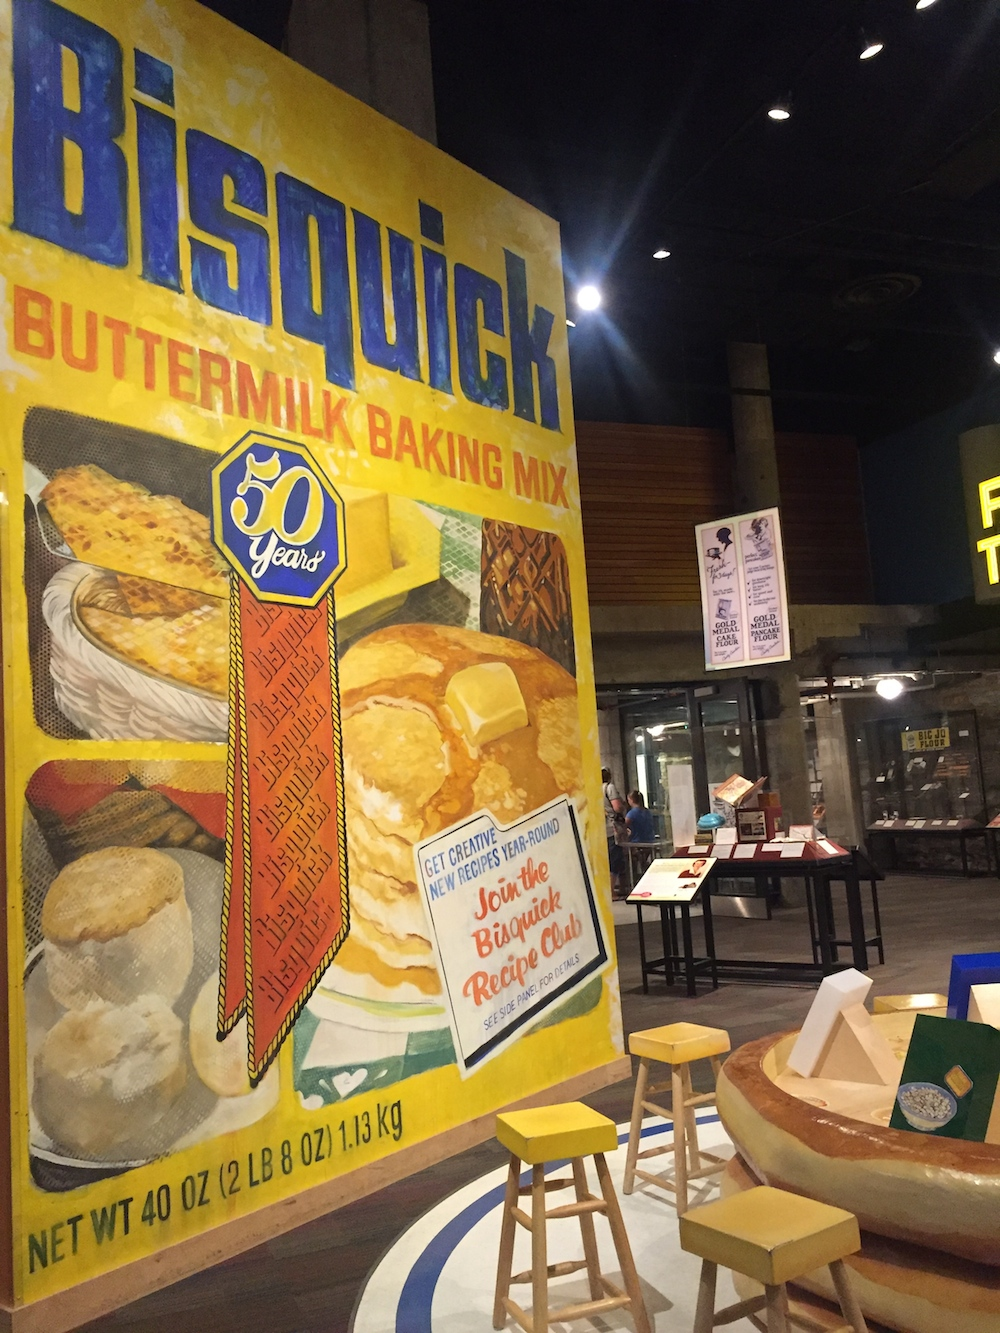 Bisquick Buttermilk Baking Mix display at the Mill City Museum in Minneapolis, Minnesota